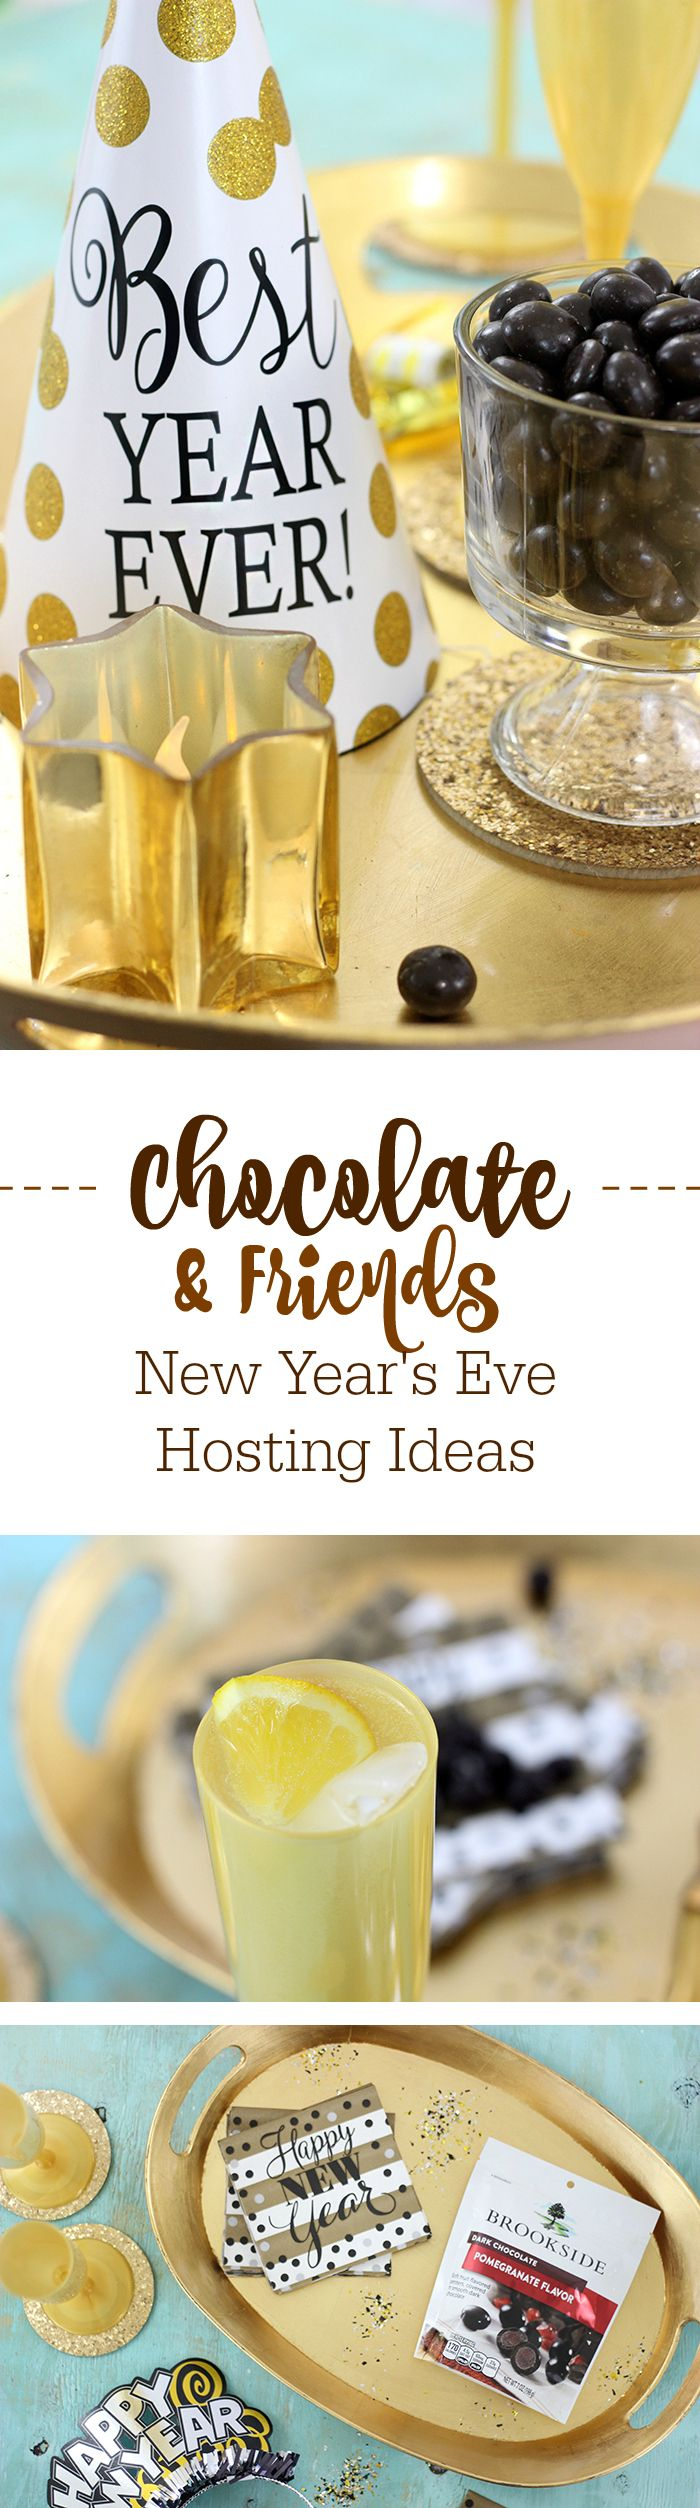 Chocolate and Friends. Get ideas on the best way to host a casual New Year's Eve Gathering or Party. #AD